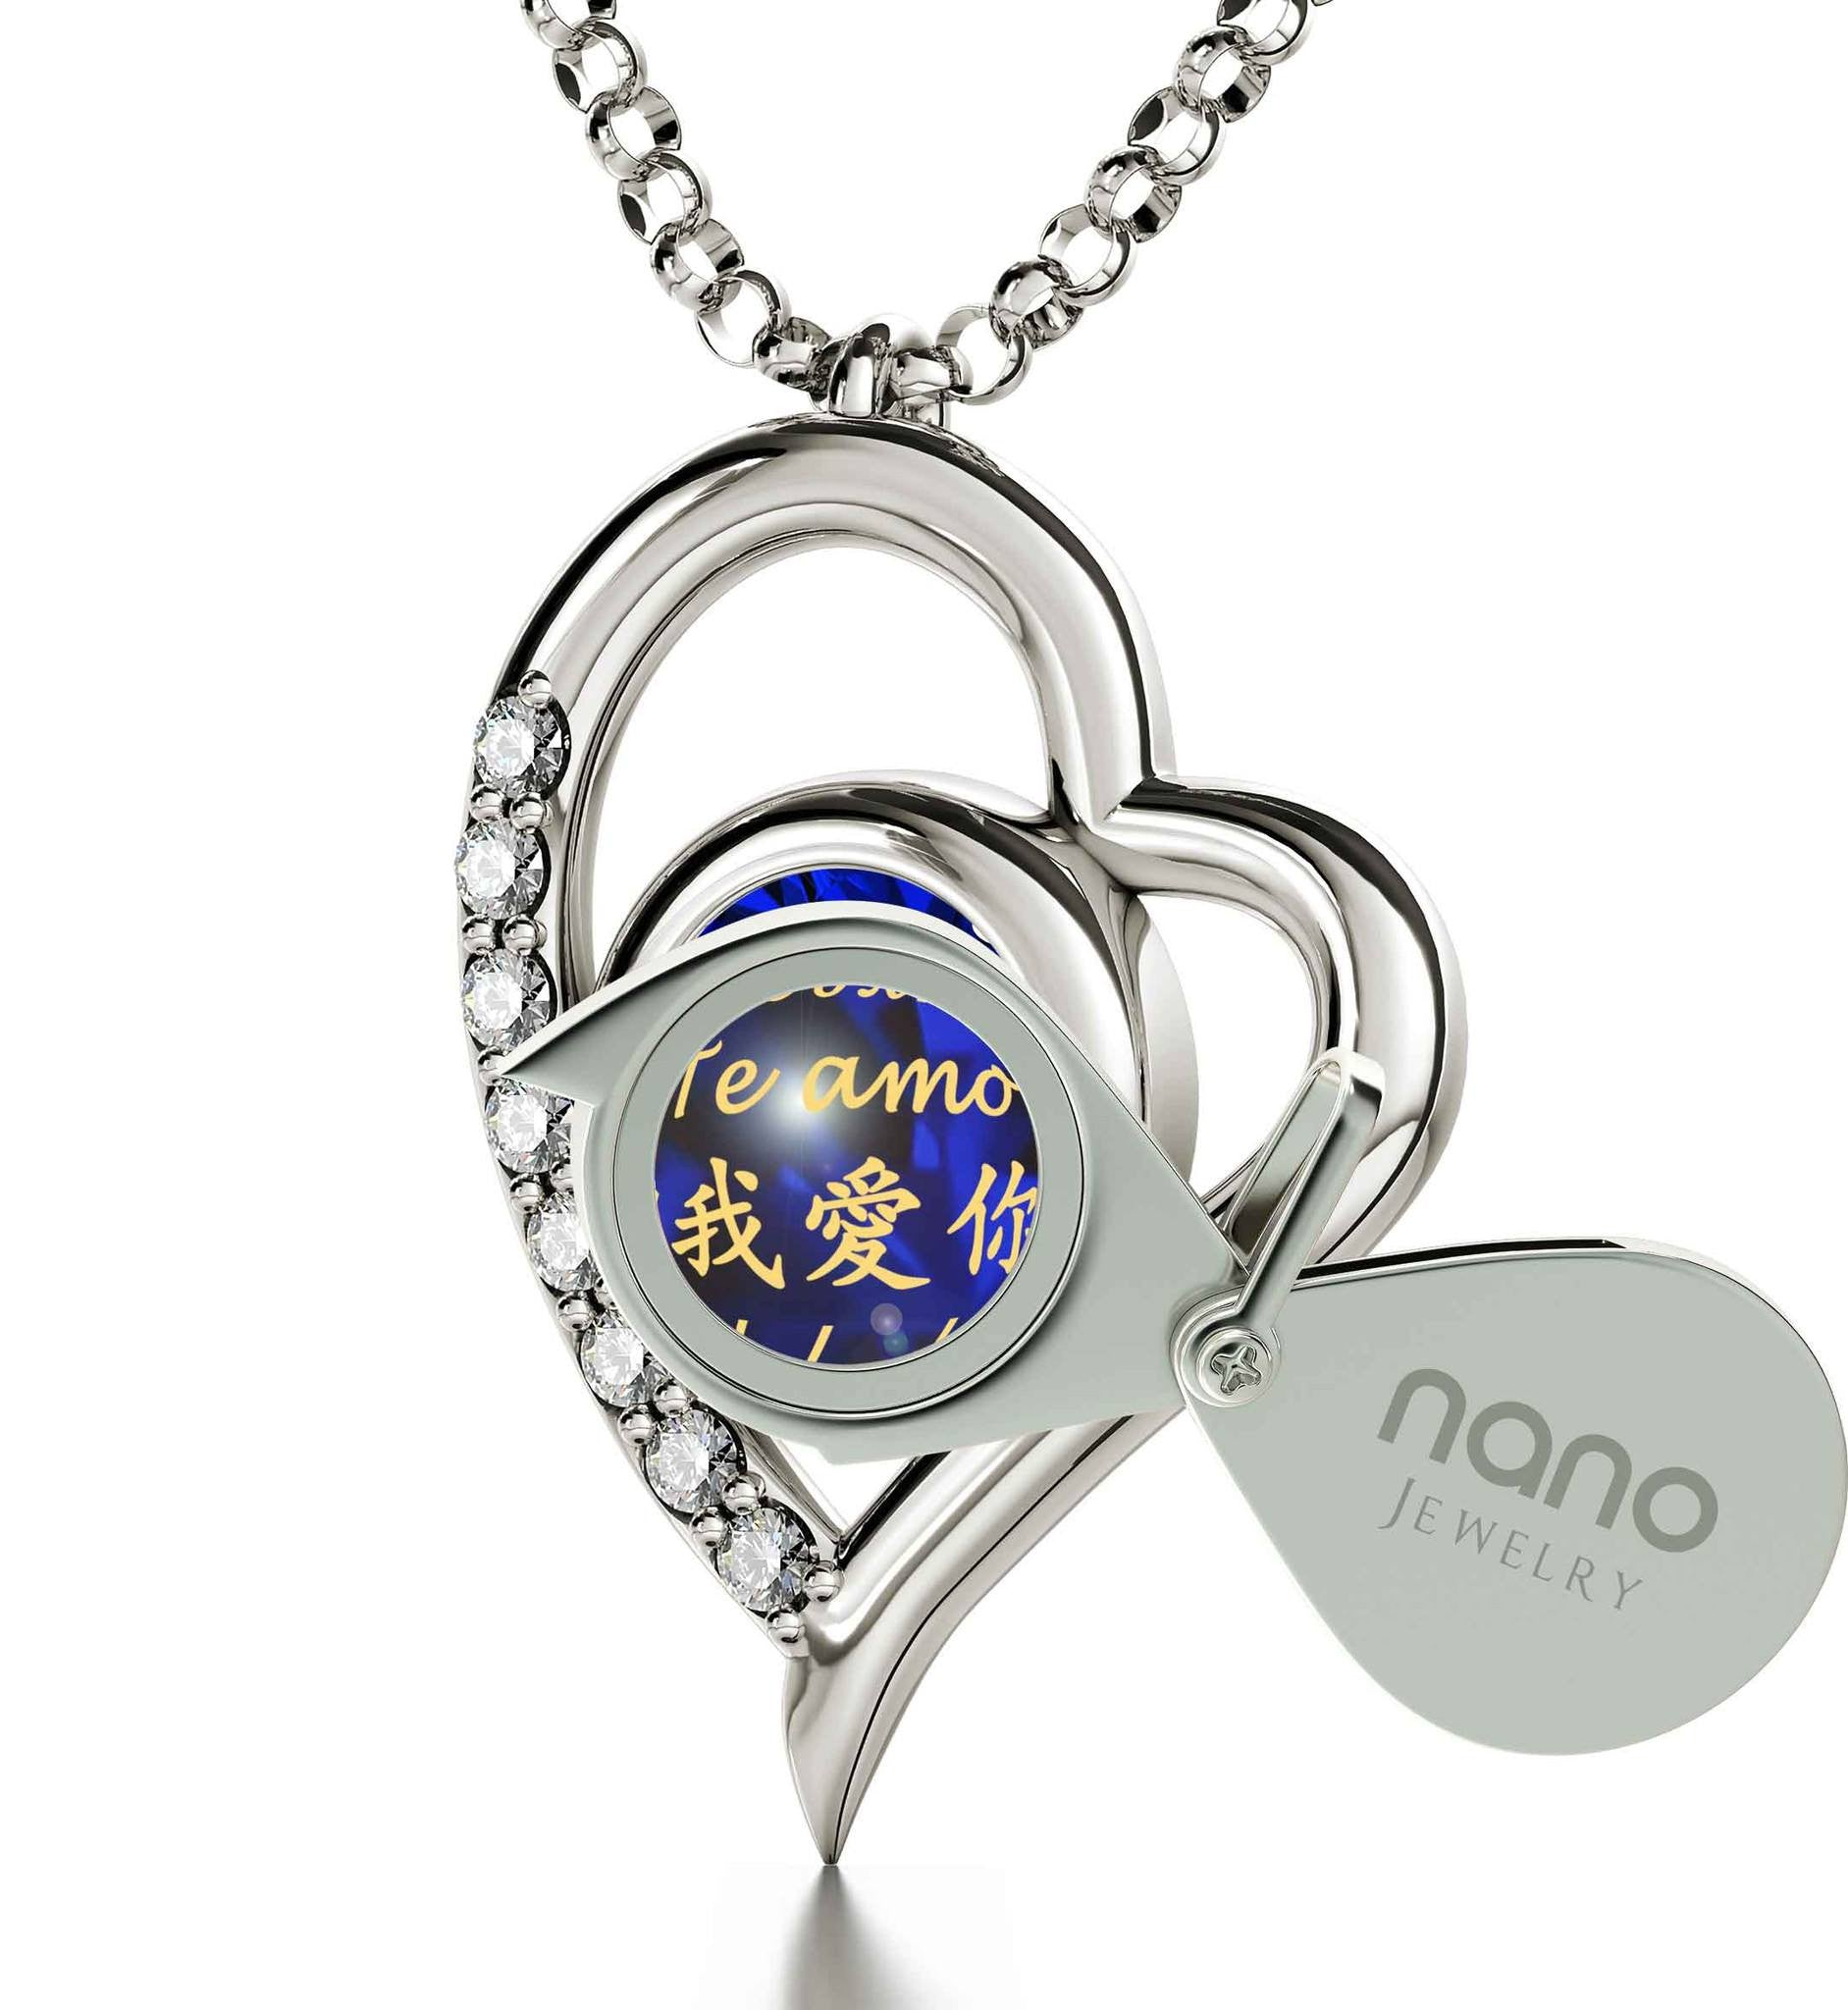 "Good Presents for Girlfriend, ""IchLiebe Dich"", Heart Shaped Necklace, Top Gift Ideas for Women by Nano Jewelry"